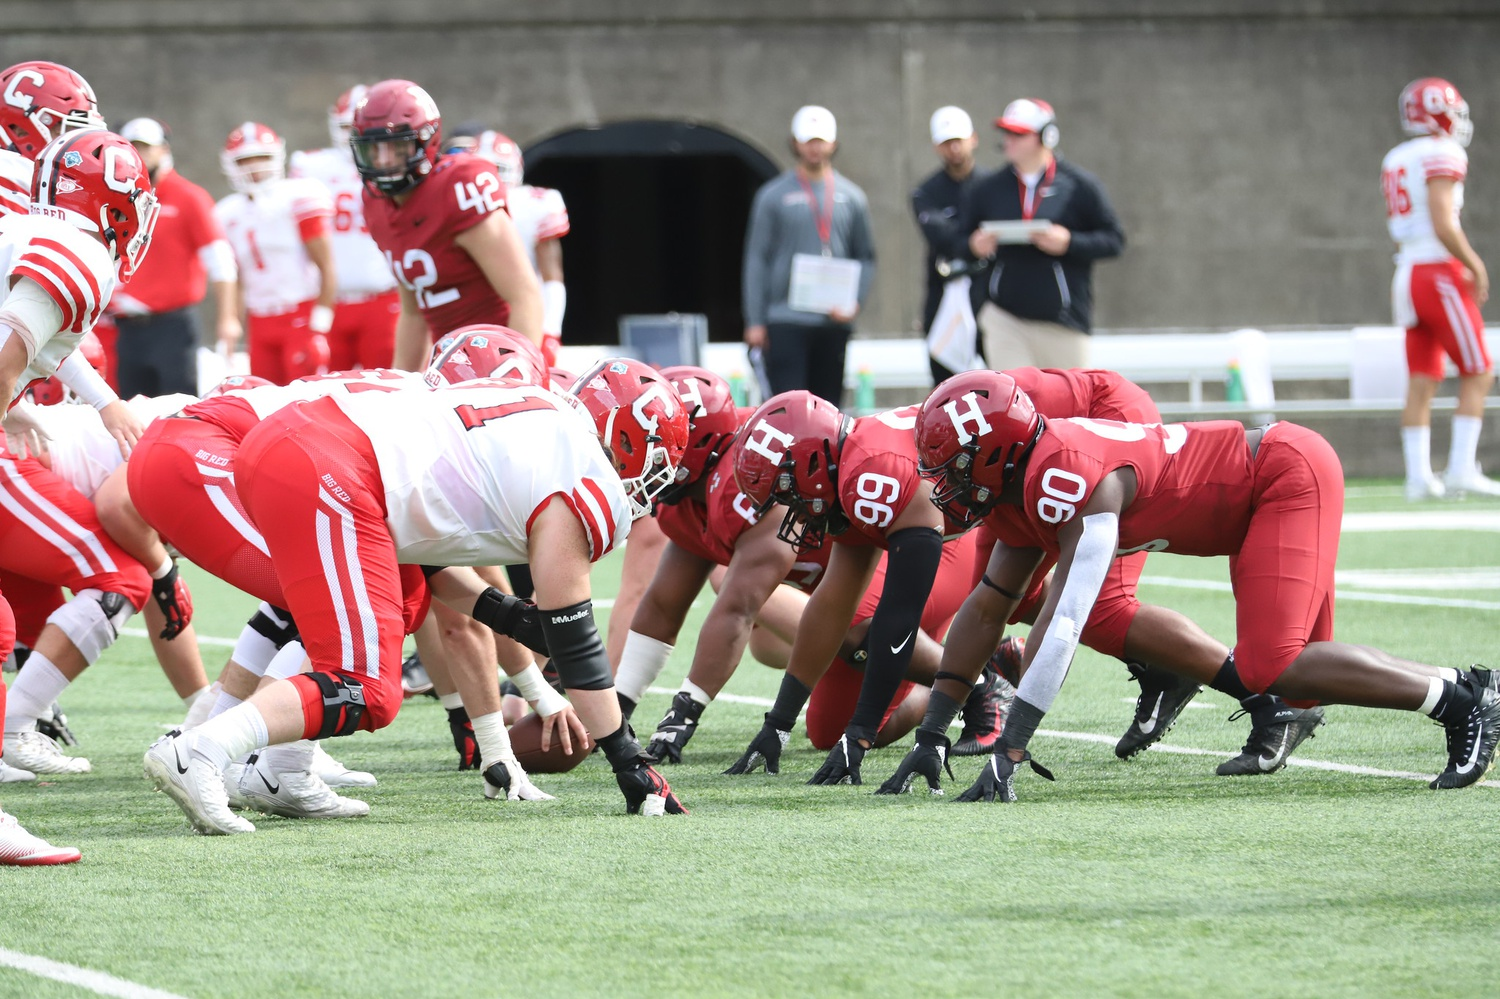 The Harvard defensive line, led by junior Truman Jones, gears up for a confrontation with Big Red offensive line in Saturday's matchup.